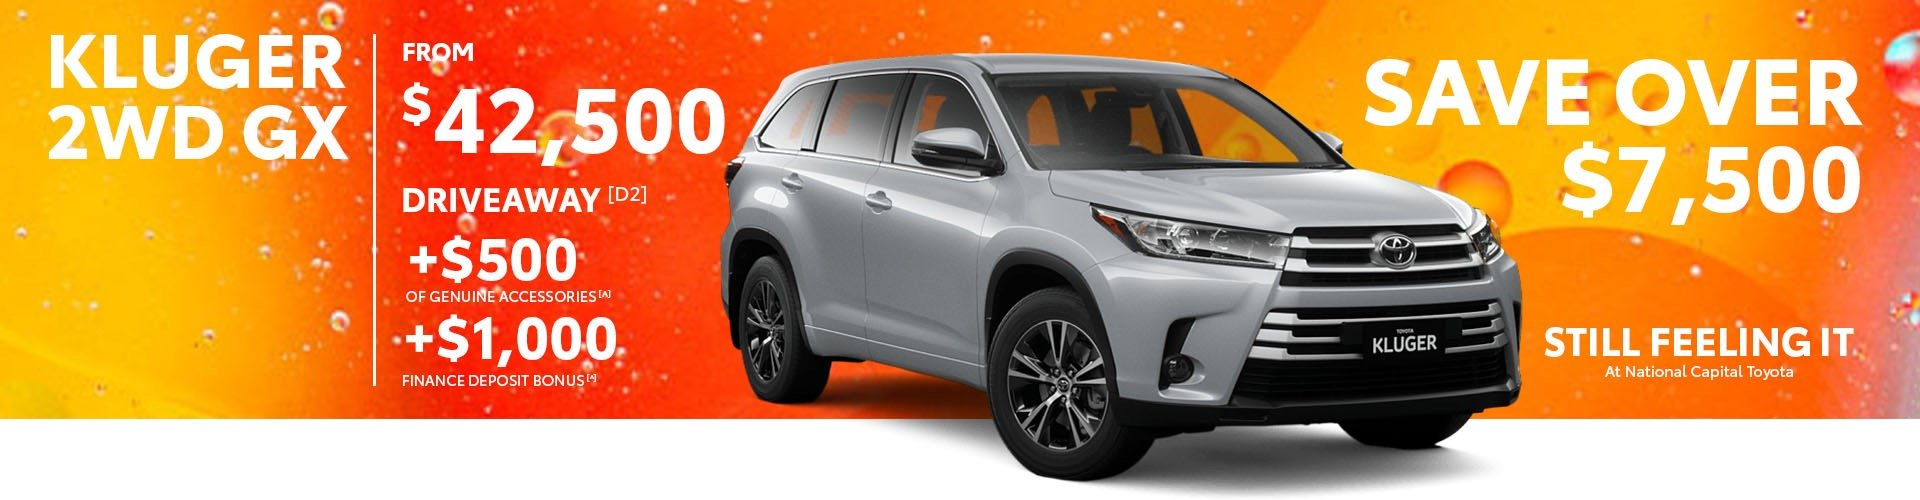 National Capital Toyota Kluger